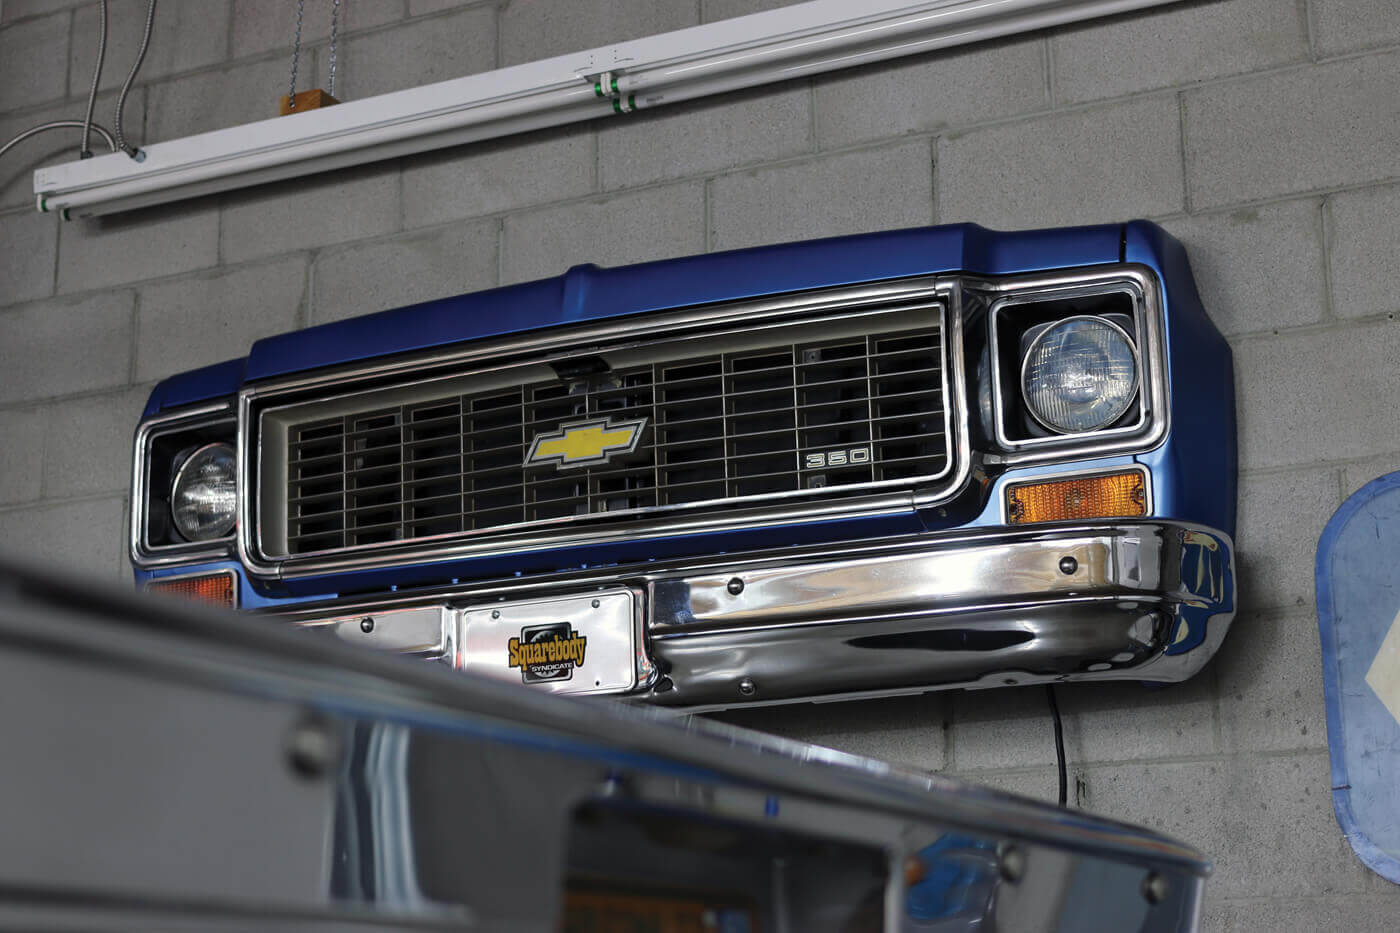 A Man Obsessed Squarebody Syndicate And Comfort Food Street Trucks